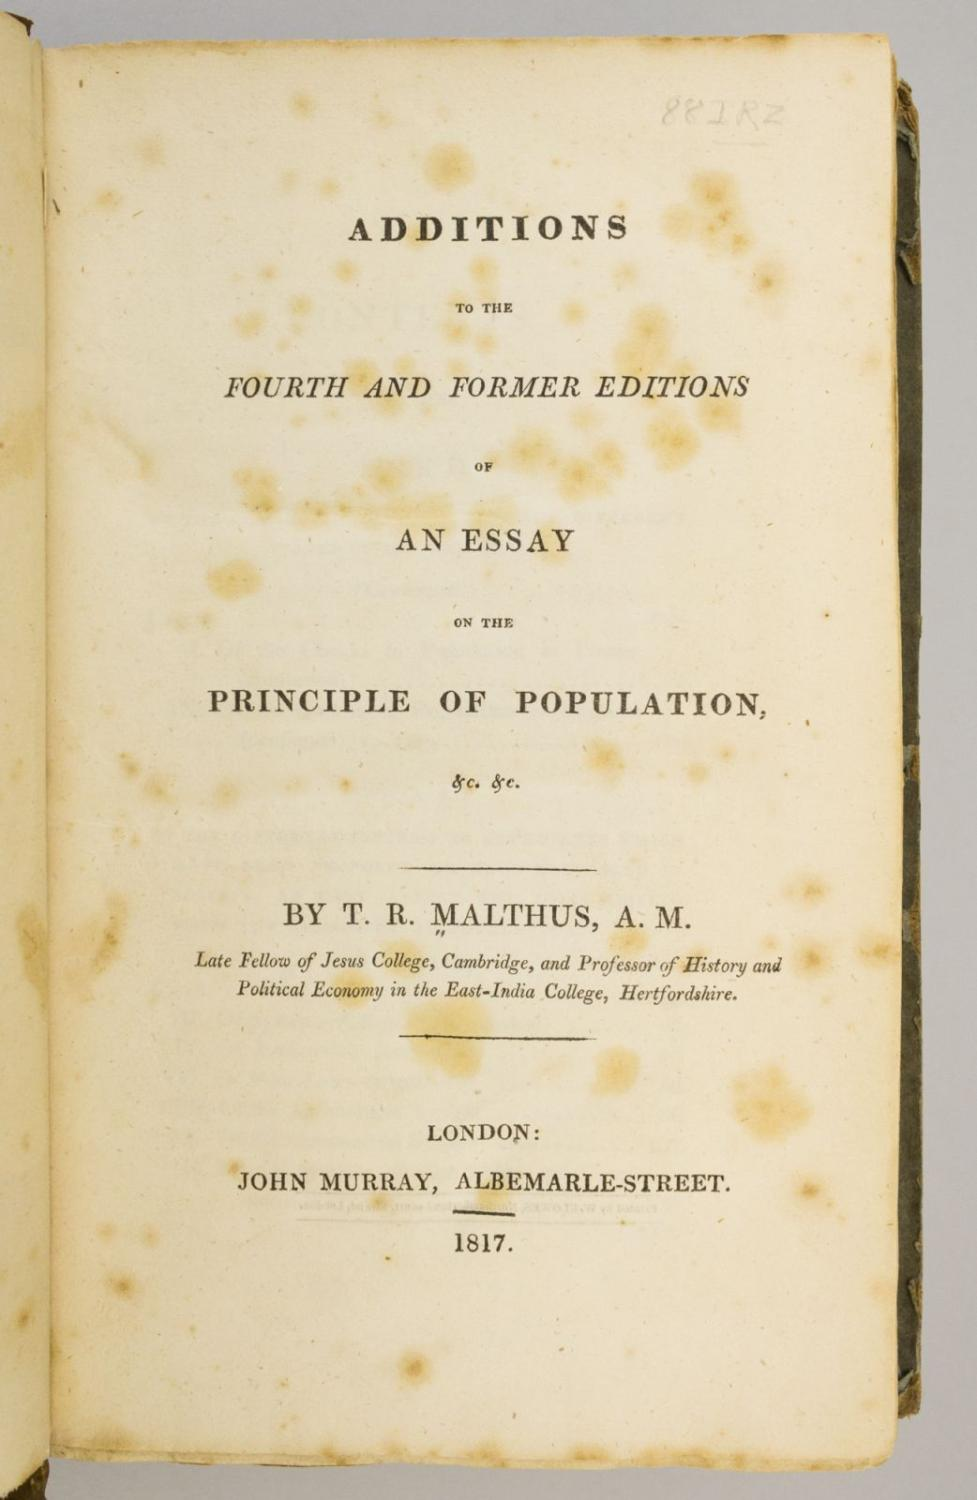 002 5337830061 2 An Essay On The Principle Of Population Fascinating By Thomas Malthus Pdf In Concluded Which Following Full